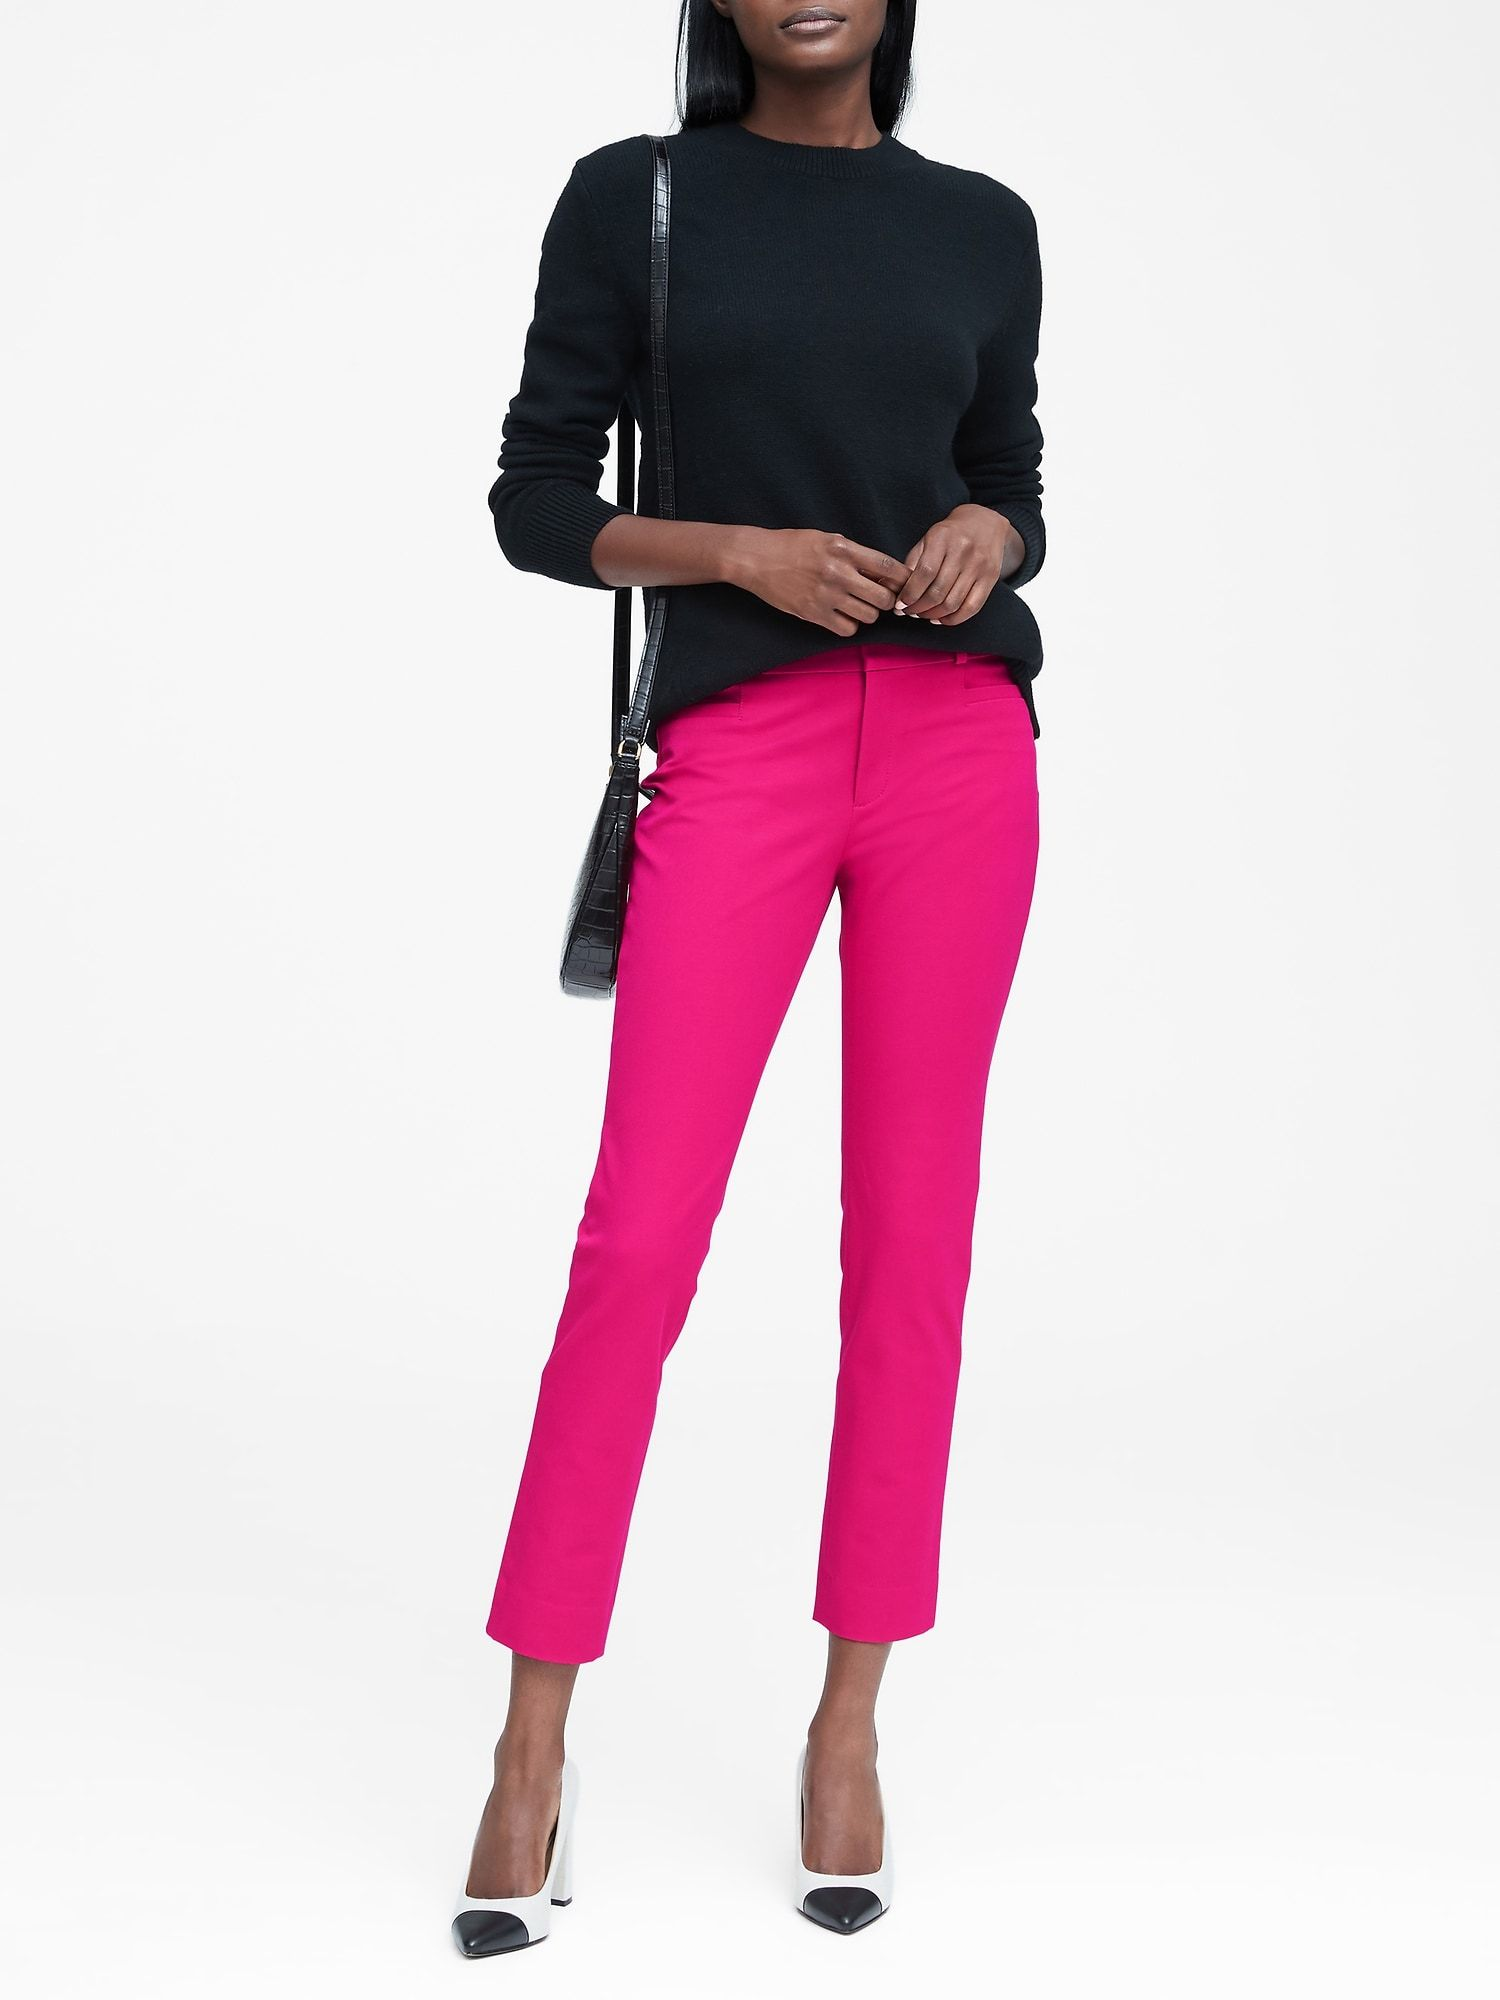 cb1b8f73b18ff9 product photo Trouser Outfits, Pink Sweater, Hot Pink Pants, Pink Pants  Outfit,